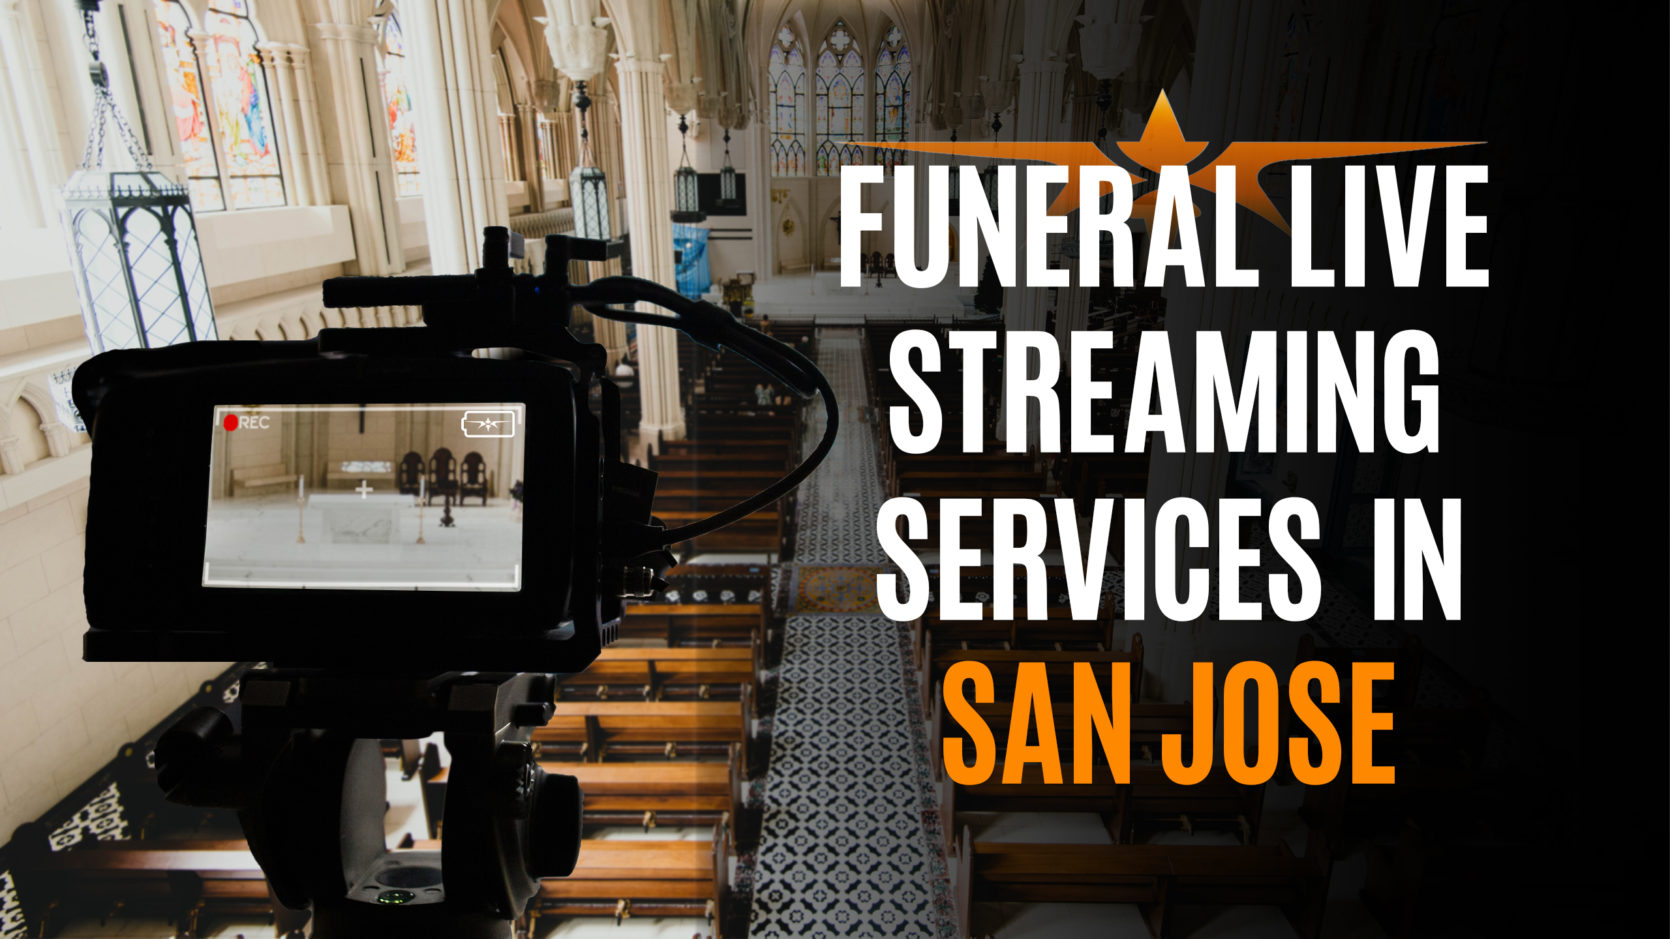 Funeral Live Streaming Services in San Jose